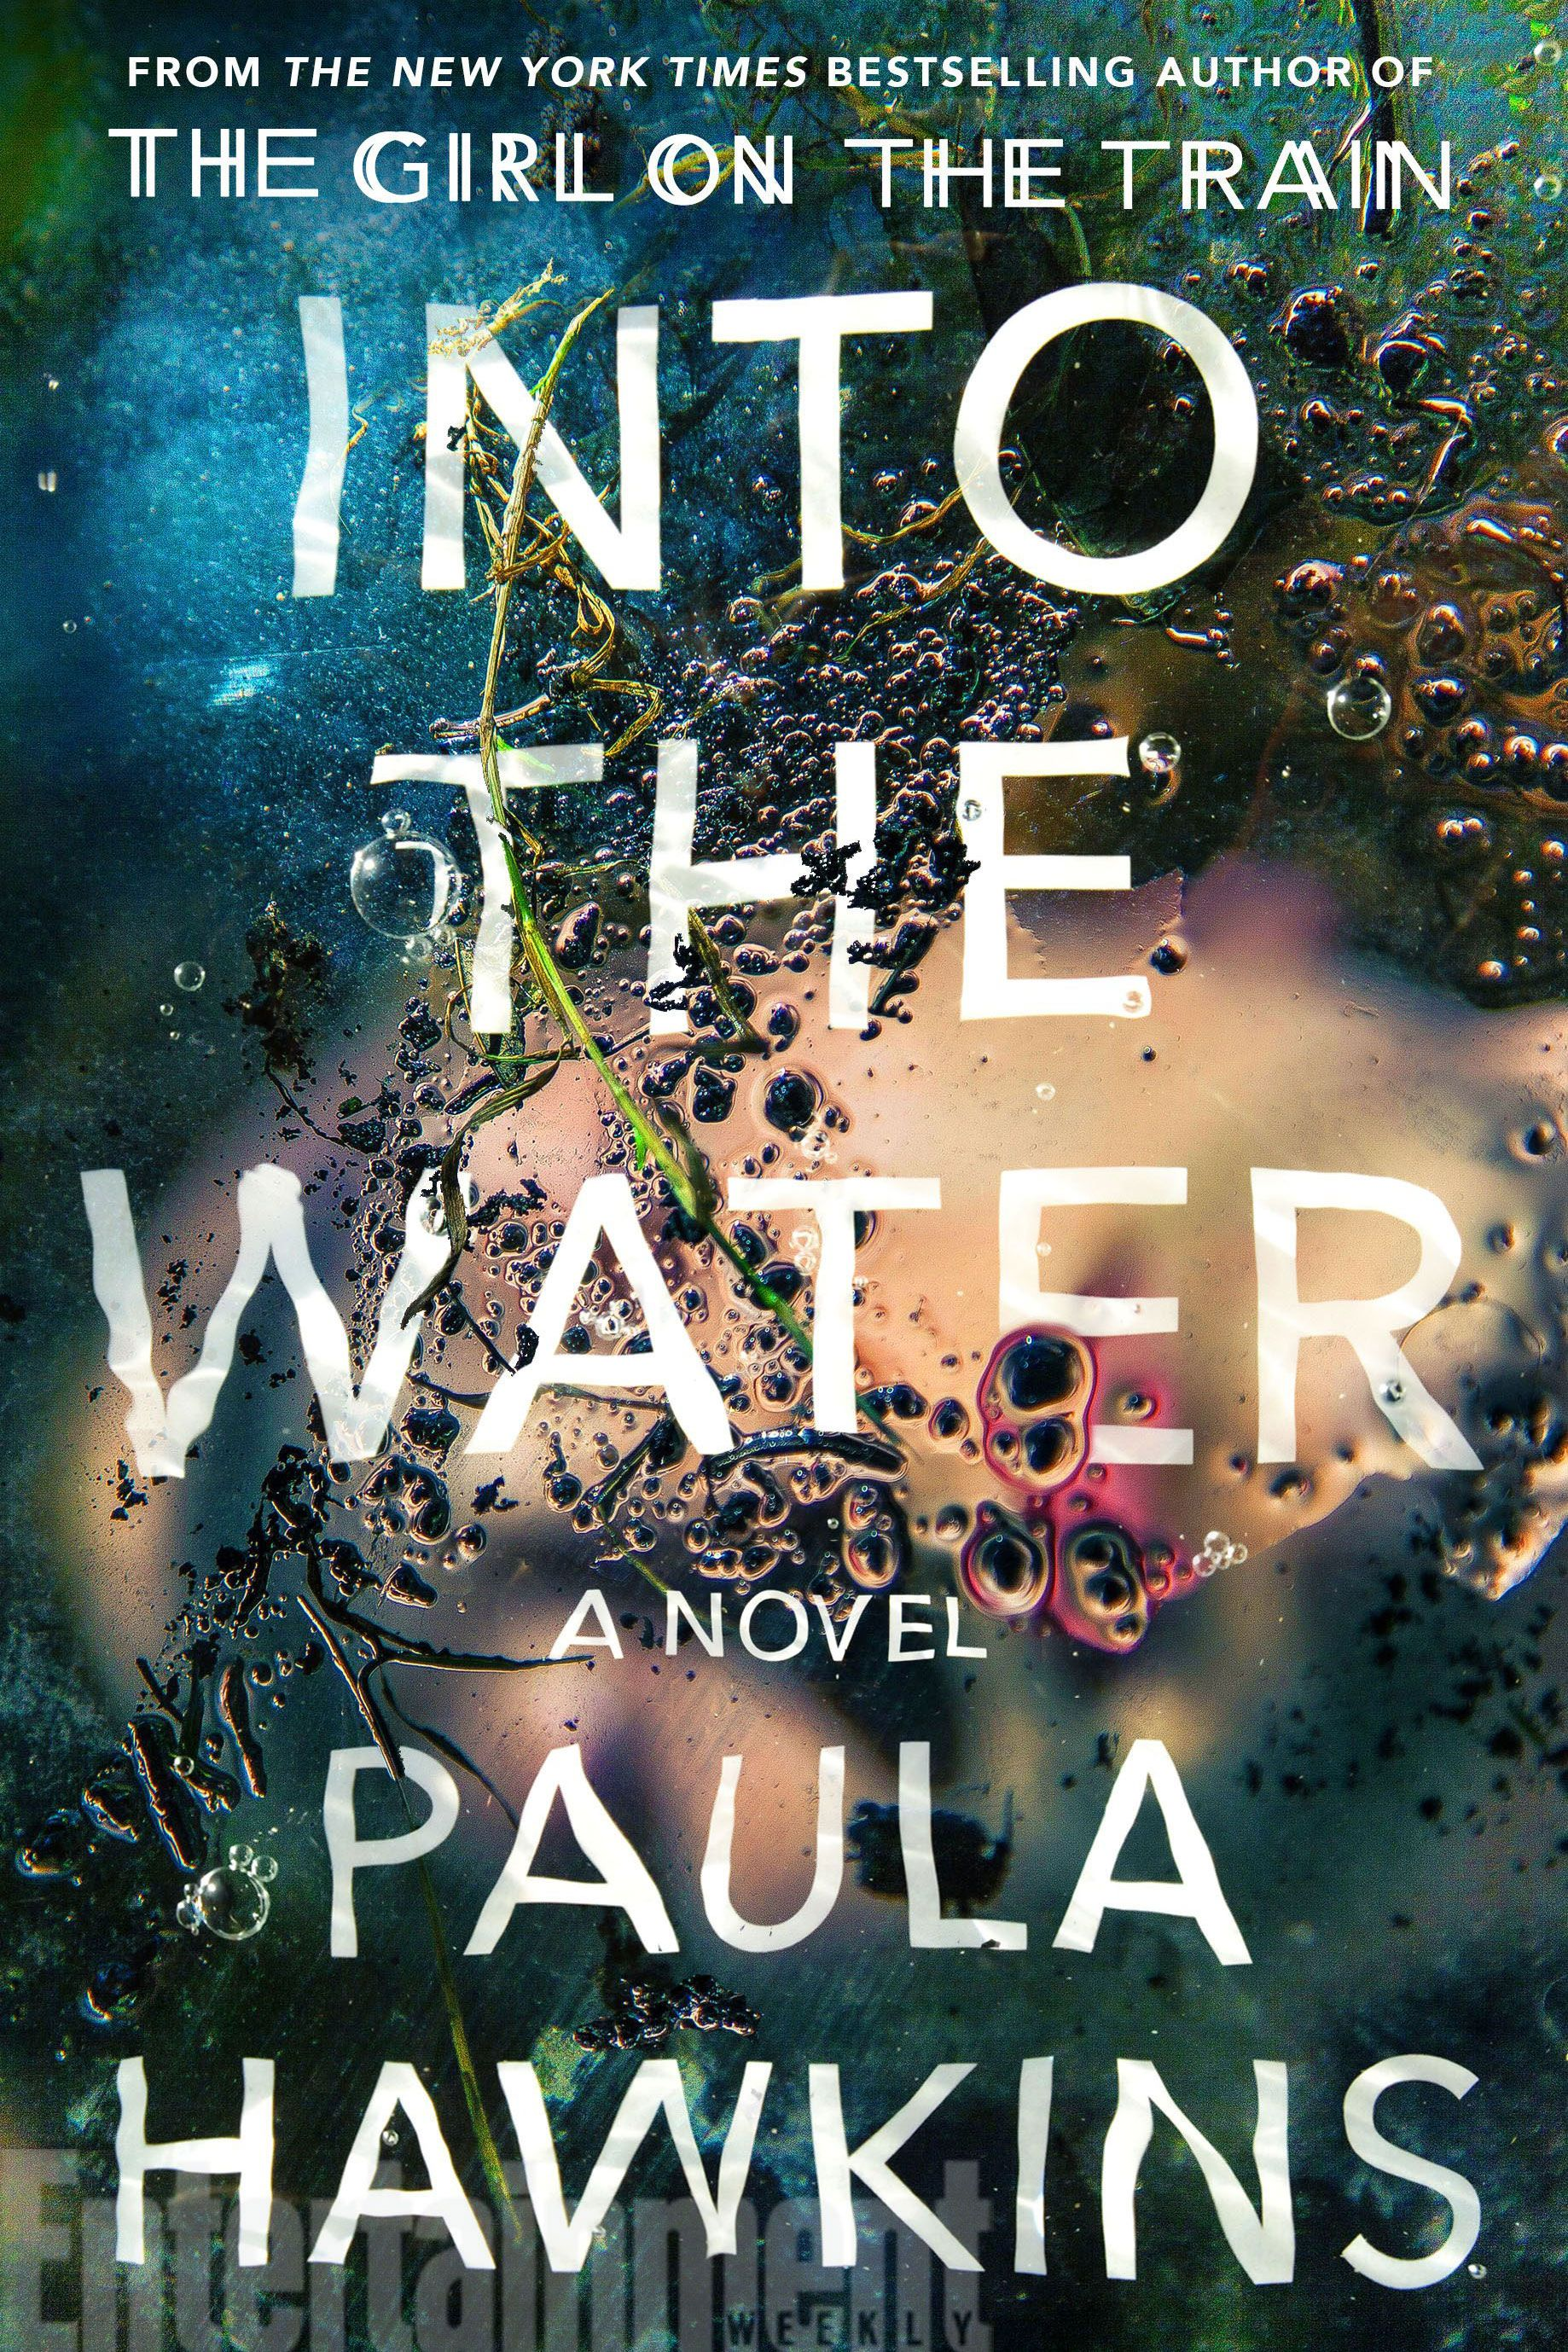 """<p>New York Times bestselling author and suspense master Paula Hawkins returns with a dark tale about dead women discovered at the bottom of a lake…and the horrifying reason why. Readers will be locked in a guessing game until the unnerving conclusive (and it's hopelessly unpredictable, in true Hawkins style).<span>It'll give you the most thrills and chillssince<em data-verified=""""redactor"""" data-redactor-tag=""""em"""">The Girl On the Train</em><span class=""""redactor-invisible-space"""">.</span></span></p><p><span><span class=""""redactor-invisible-space""""><strong data-verified=""""redactor"""" data-redactor-tag=""""strong""""><a href=""""https://www.amazon.com/Into-Water-Novel-Paula-Hawkins/dp/0735211205/?tag=redbook_auto-append-20"""" target=""""_blank"""" class=""""slide-buy--button"""" data-tracking-id=""""recirc-text-link"""">BUY NOW</a></strong><br></span></span></p>"""